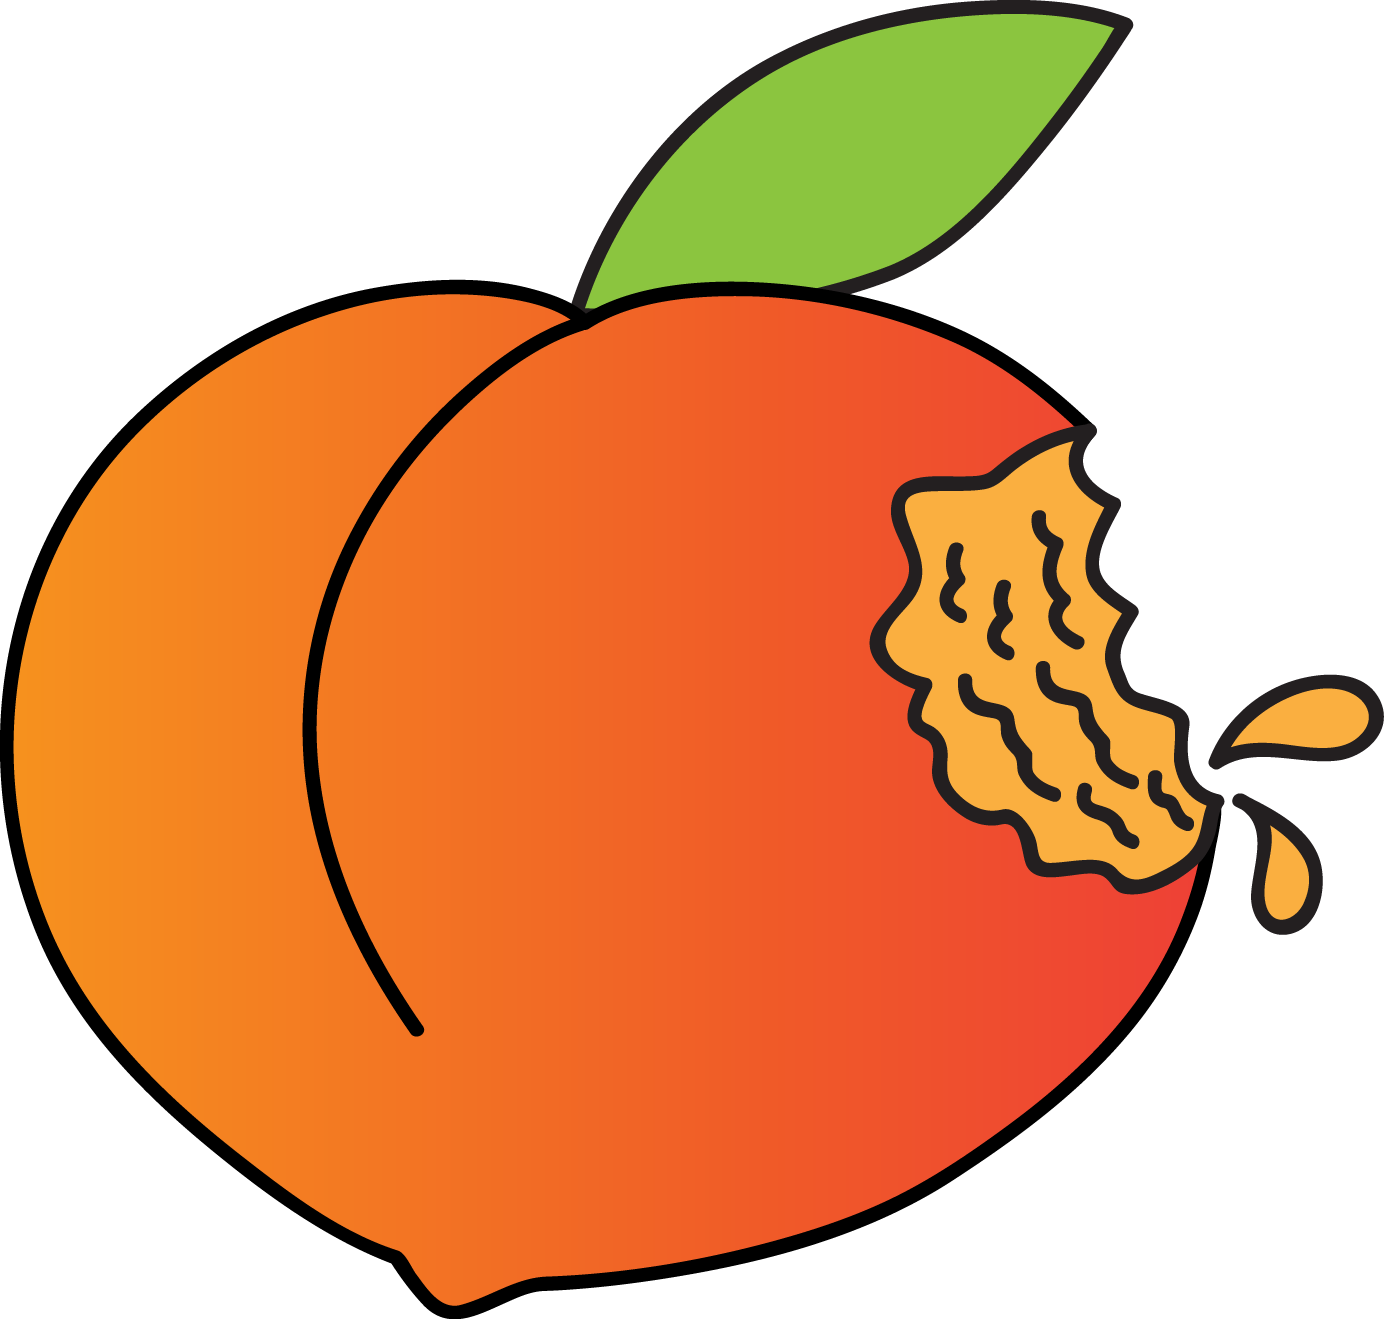 Apple halves clipart svg freeuse Peaches in Rhode Island - Rhode Island Monthly svg freeuse